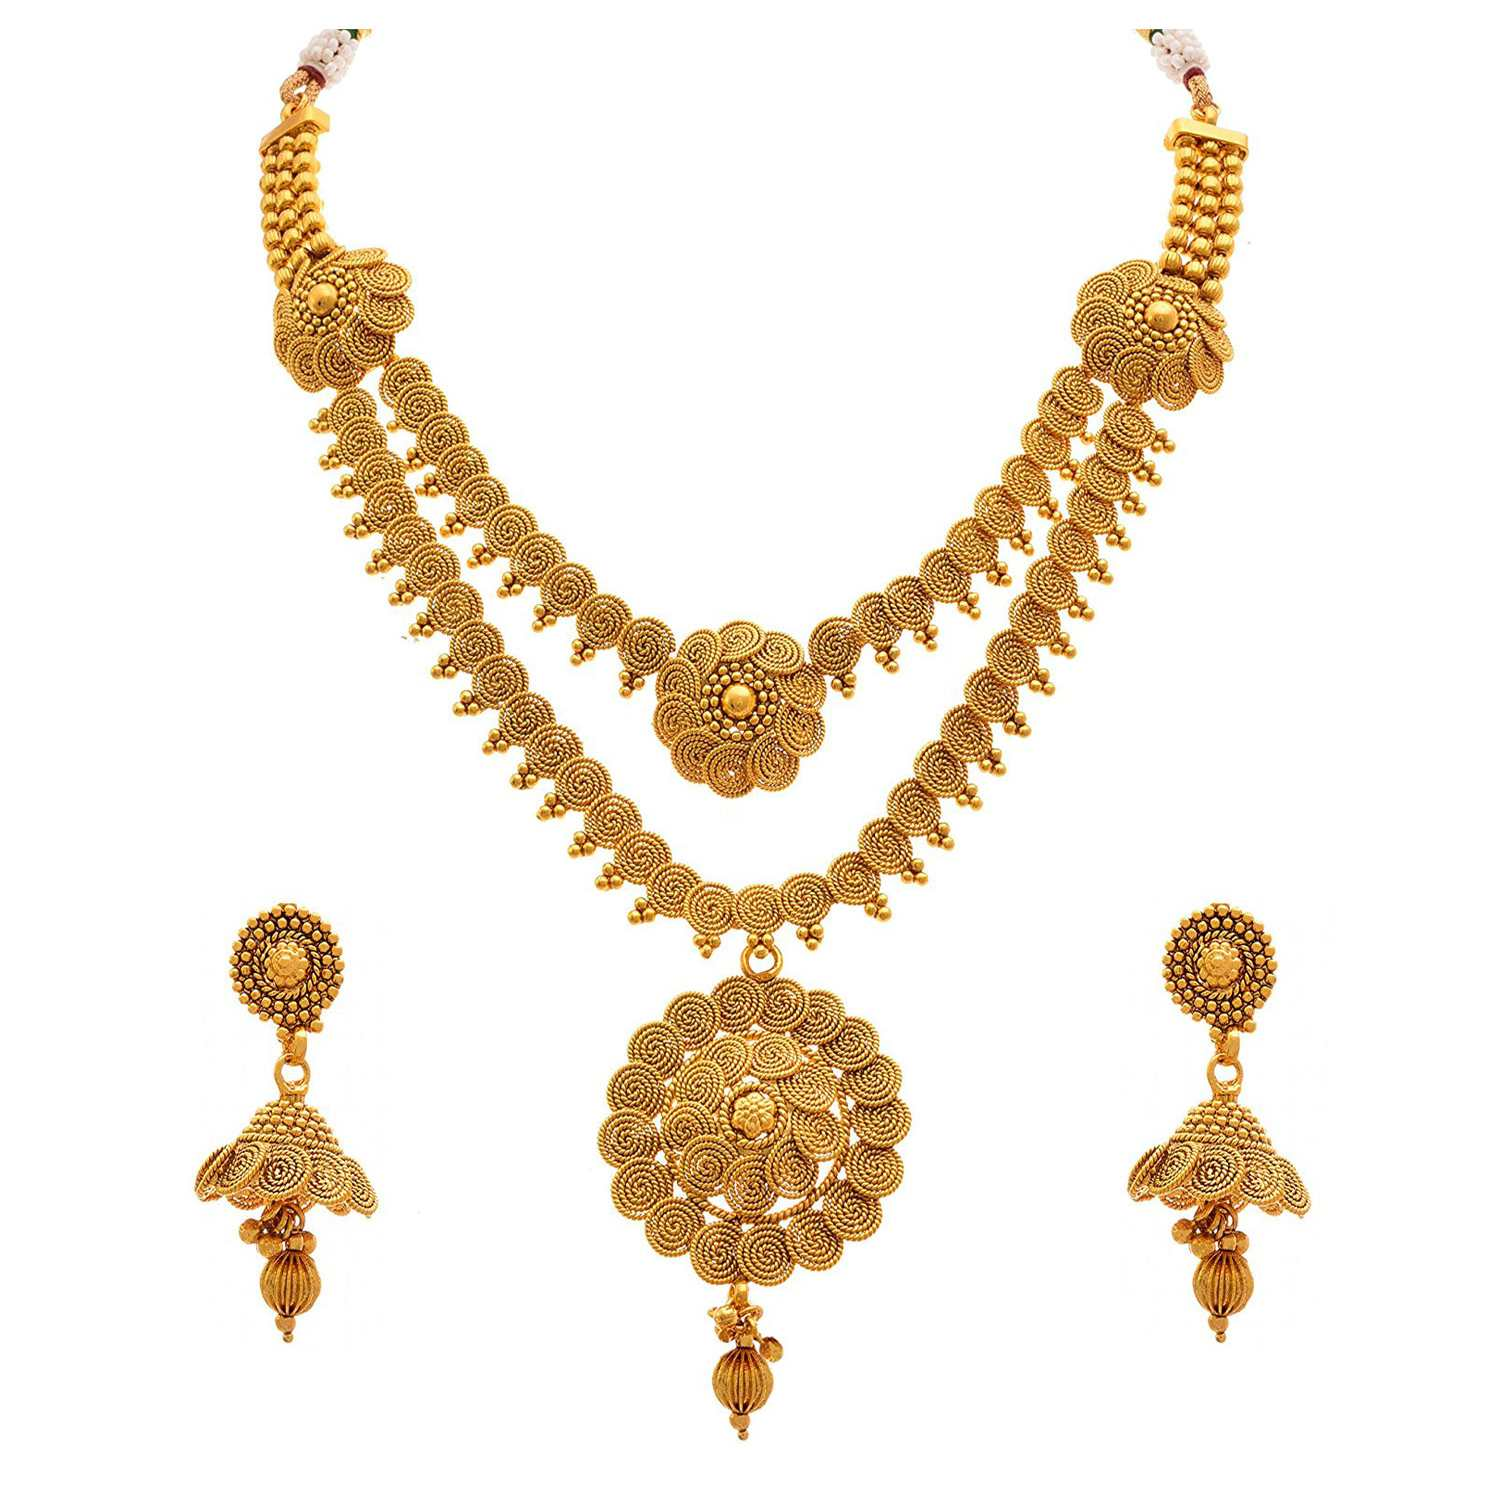 Traditional Ethnic Multi Strand One Gram Gold Plated Spiral Necklace Set / Jewellery Set For Women